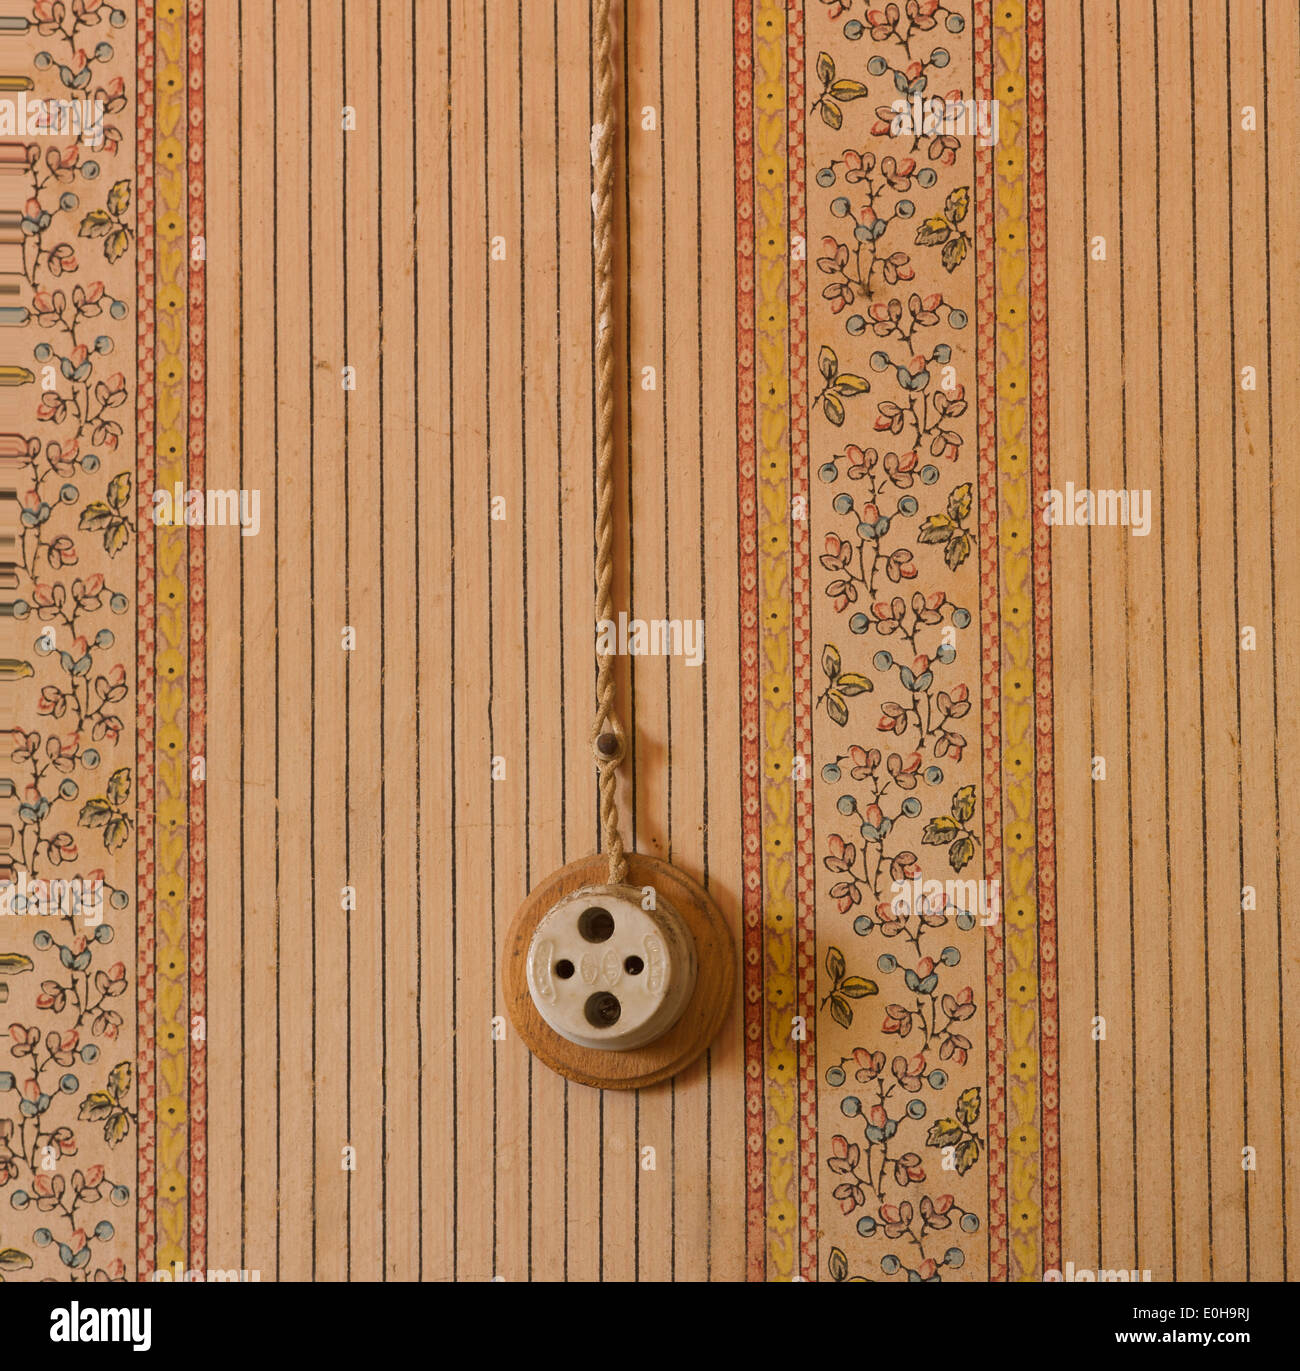 old house electrical wiring stock photos old house electrical rh alamy com old house electrical wiring colours replace old electrical wiring house